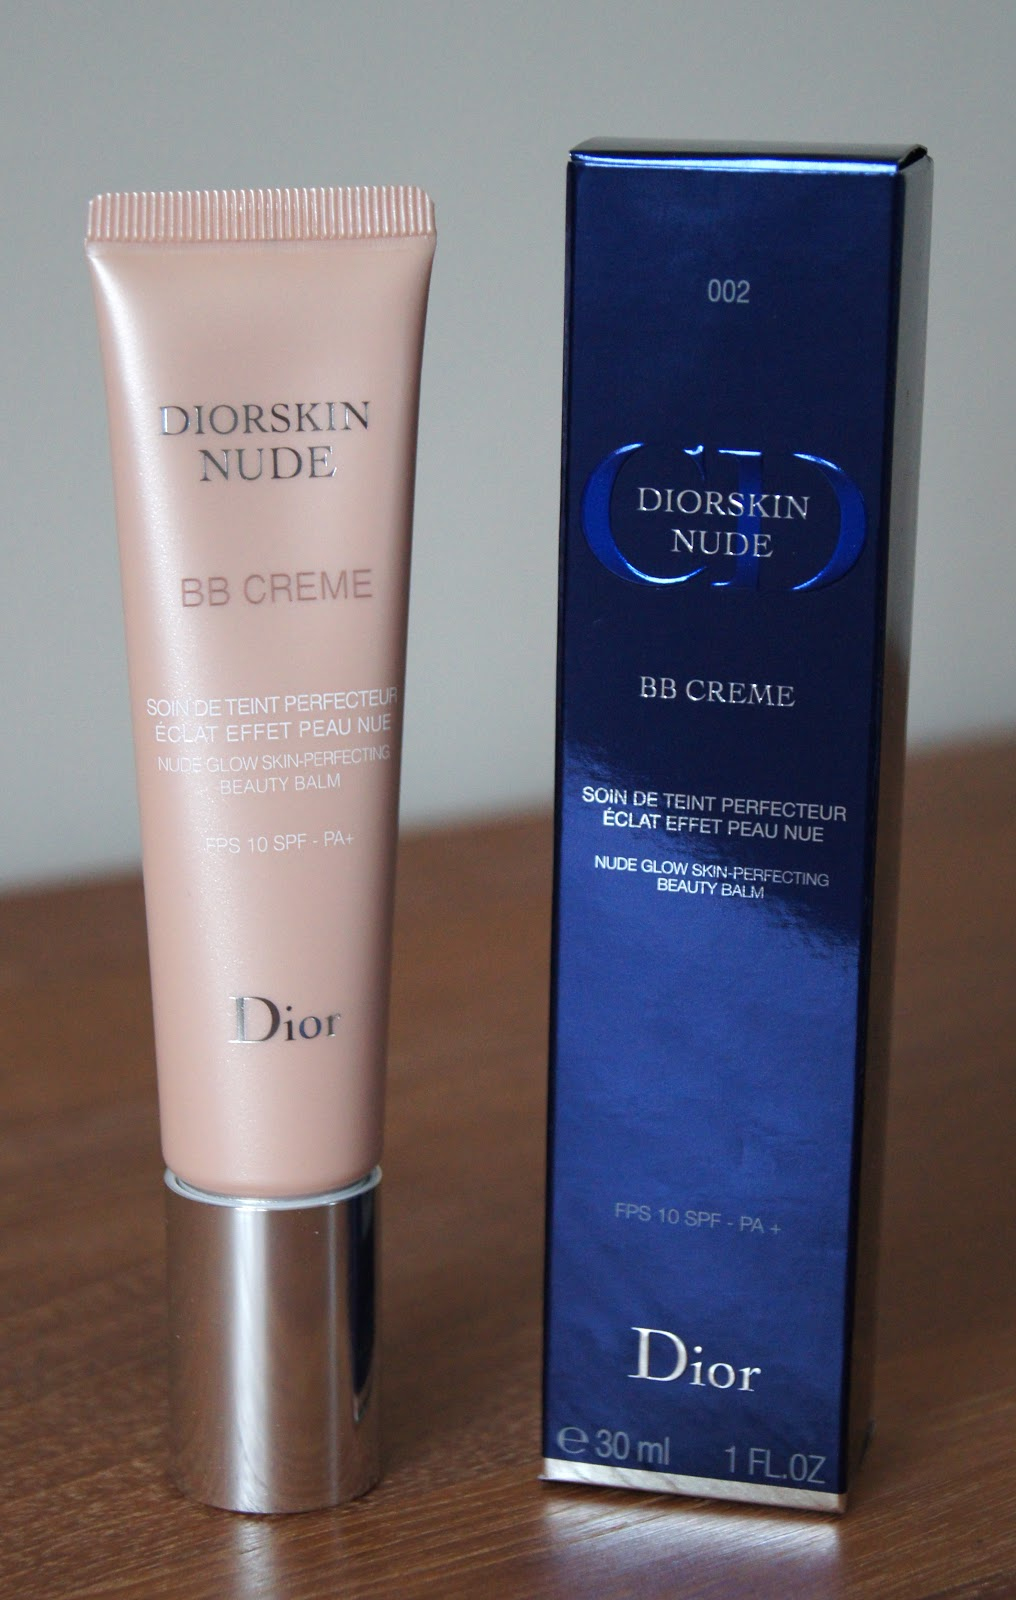 dior diorskin nude bb creme review